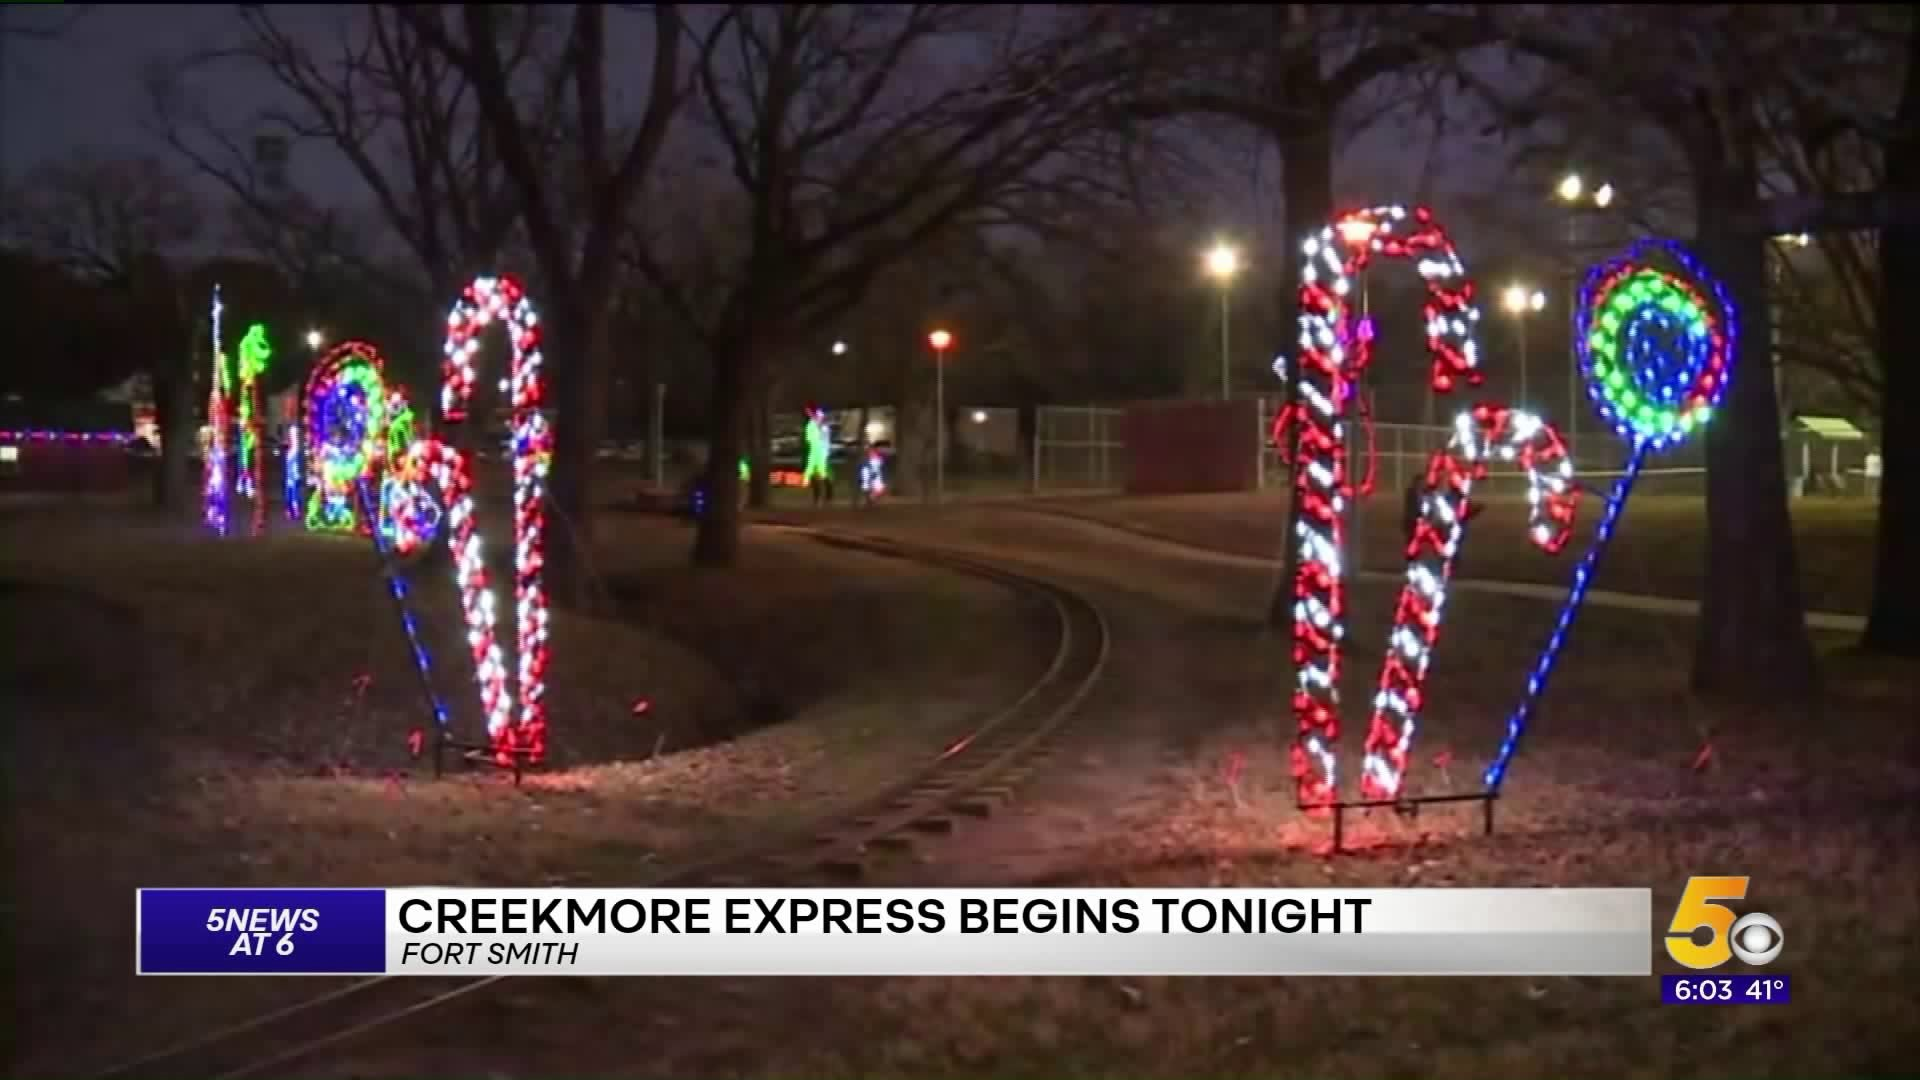 Fort Smith Christmas Lights 2020 Holiday Express Lights At Creekmore Park Opens Tonight